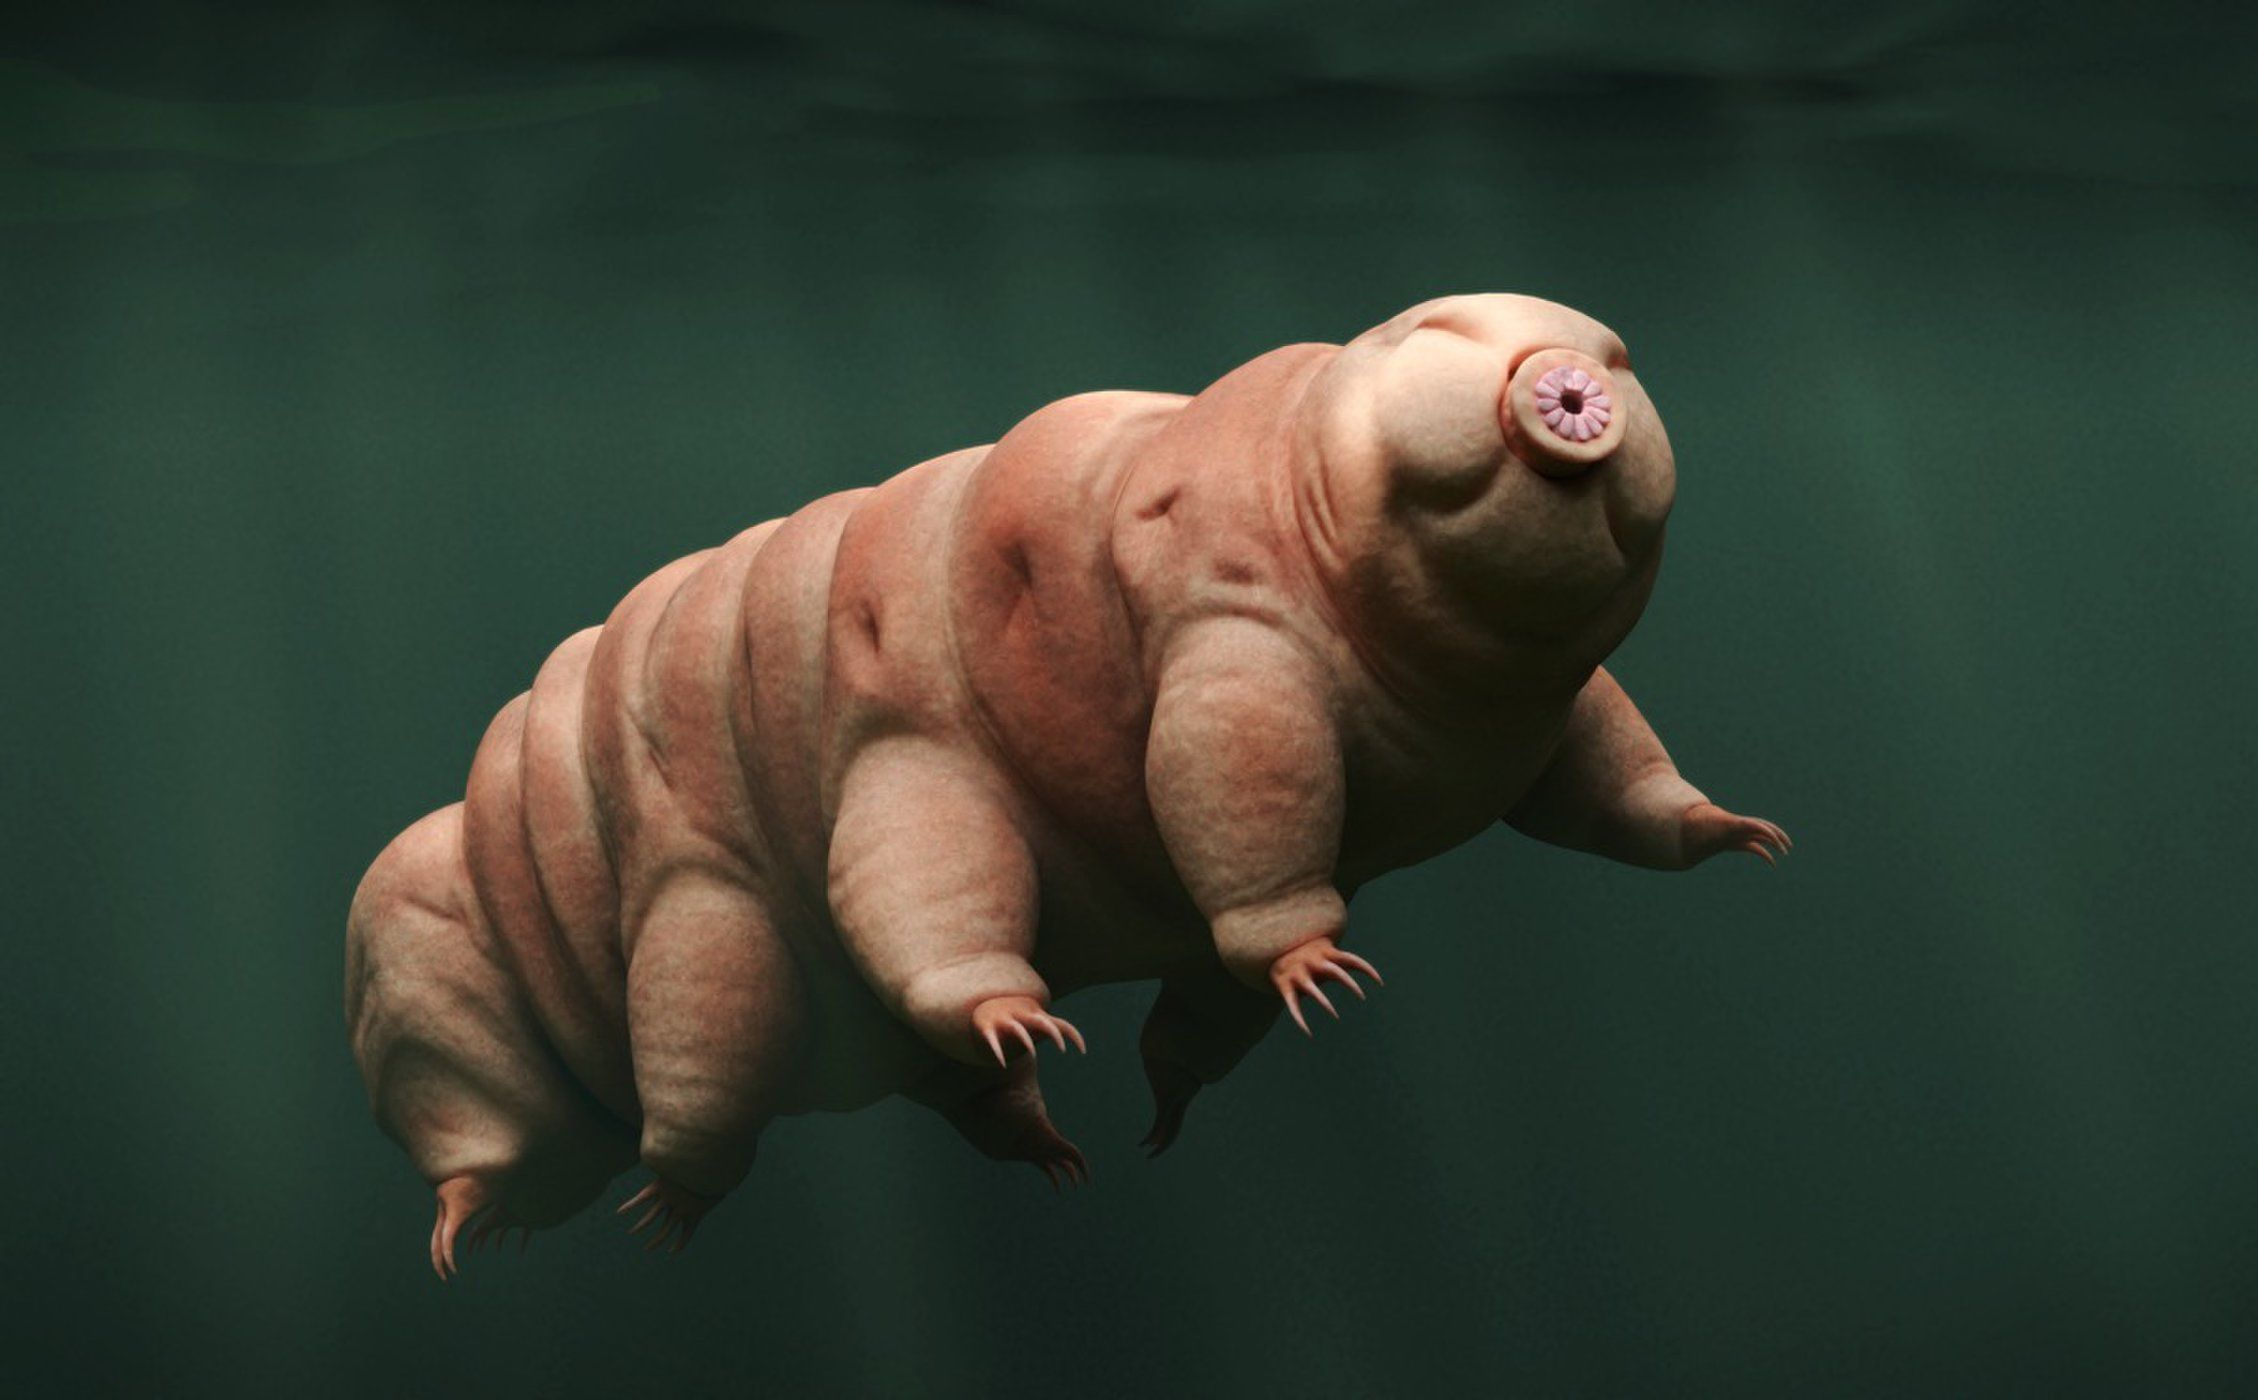 An Even Weirder Than Usual Tardigrade Just Turned Up In A Parking Lot 動物 ぬいぐるみ